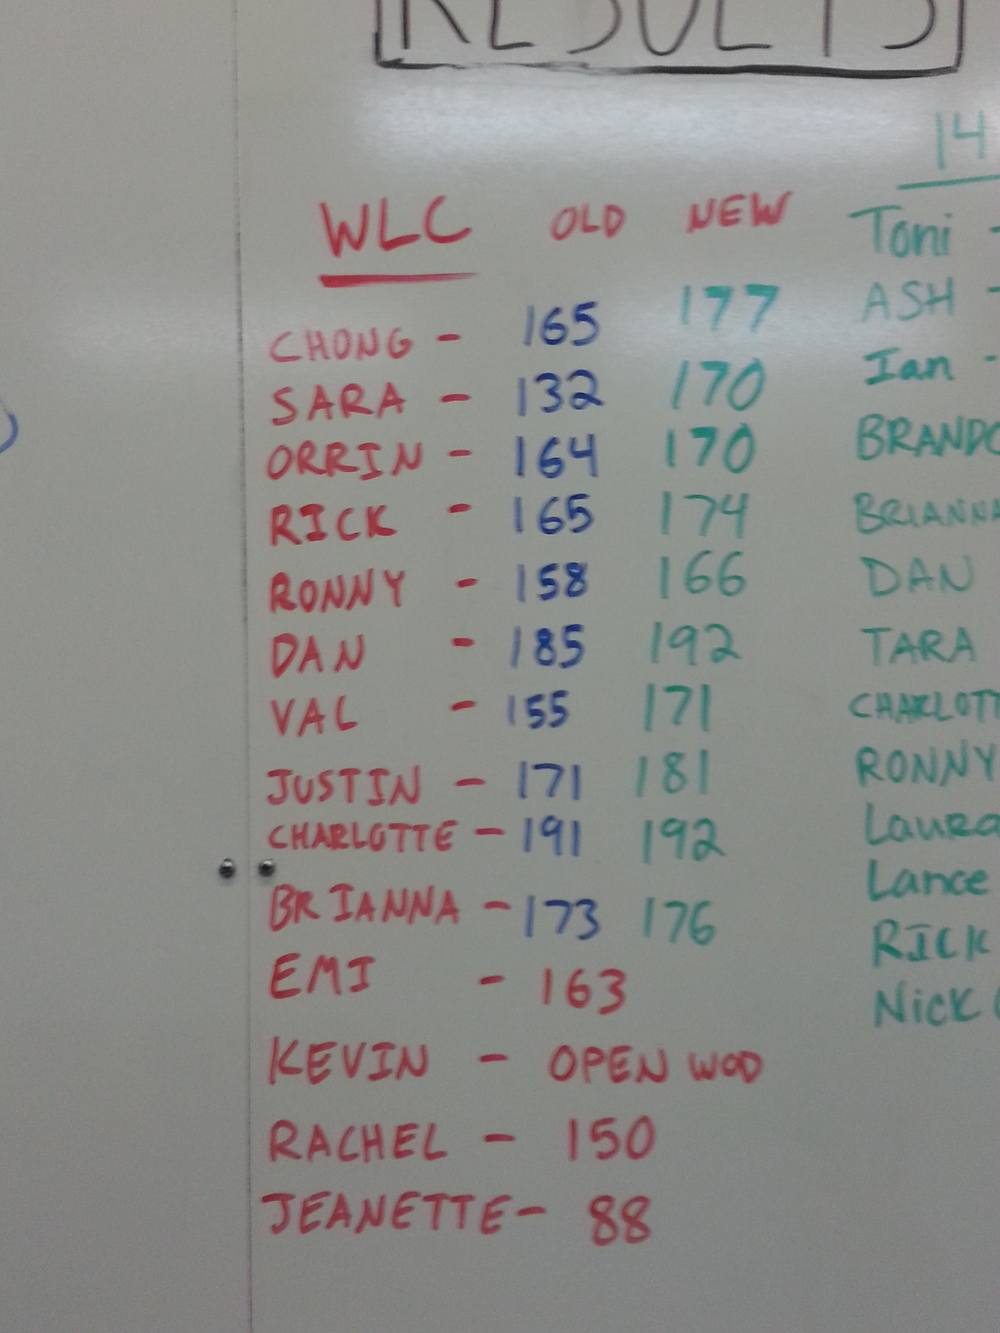 Wholelife Challenge results!  Great job everyone!!